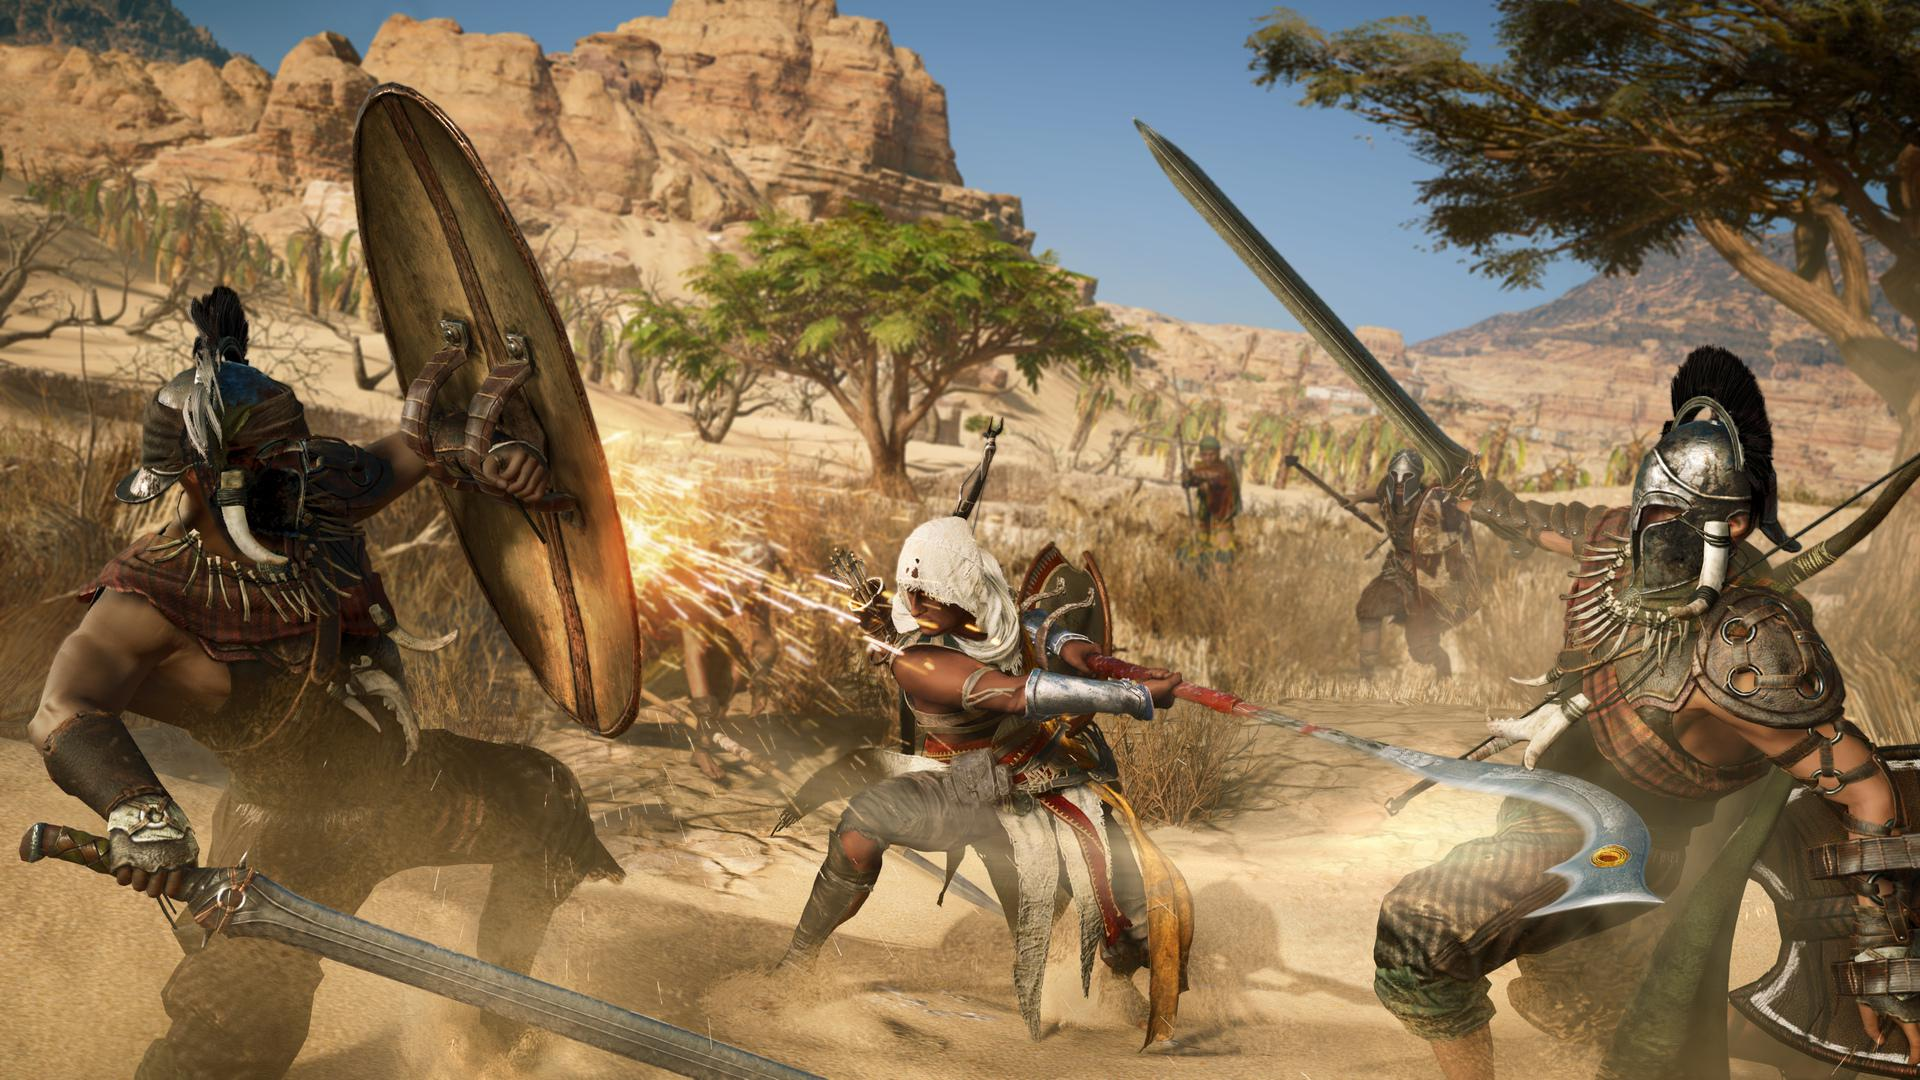 Ubisoft's Assassin's Creed Origins arrives on October 27 – so it may be worth waiting until the X comes out to pick it up